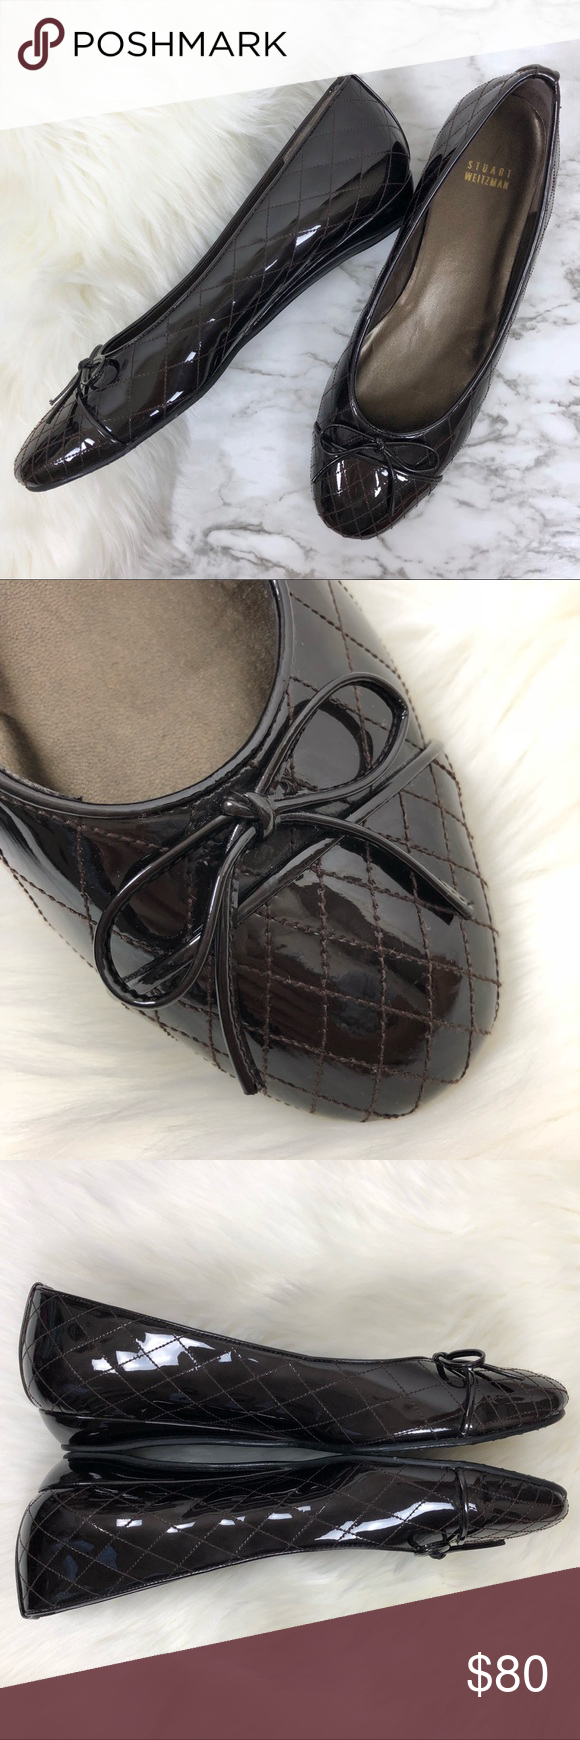 Quilted patent leather bow